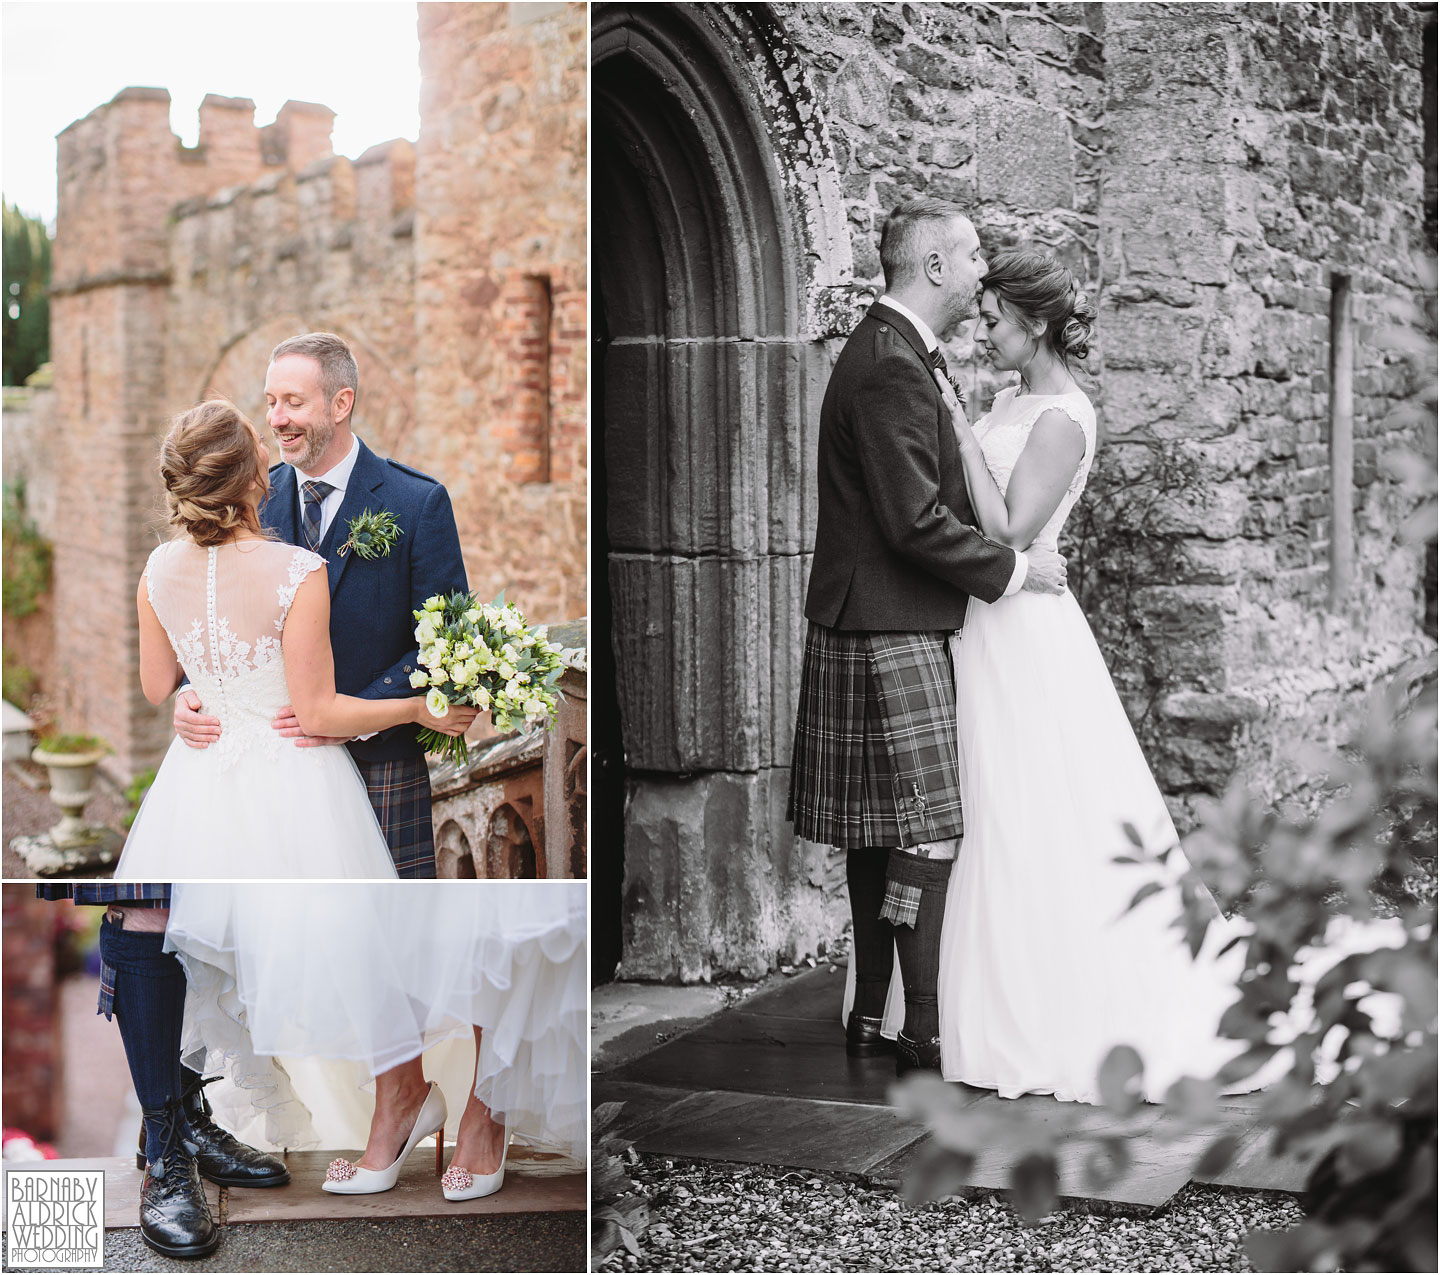 Wedding couple portraits around Rowton Castle, Shropshire Wedding Photographer, Shrewsbury wedding venue, Amazing UK Castle Wedding